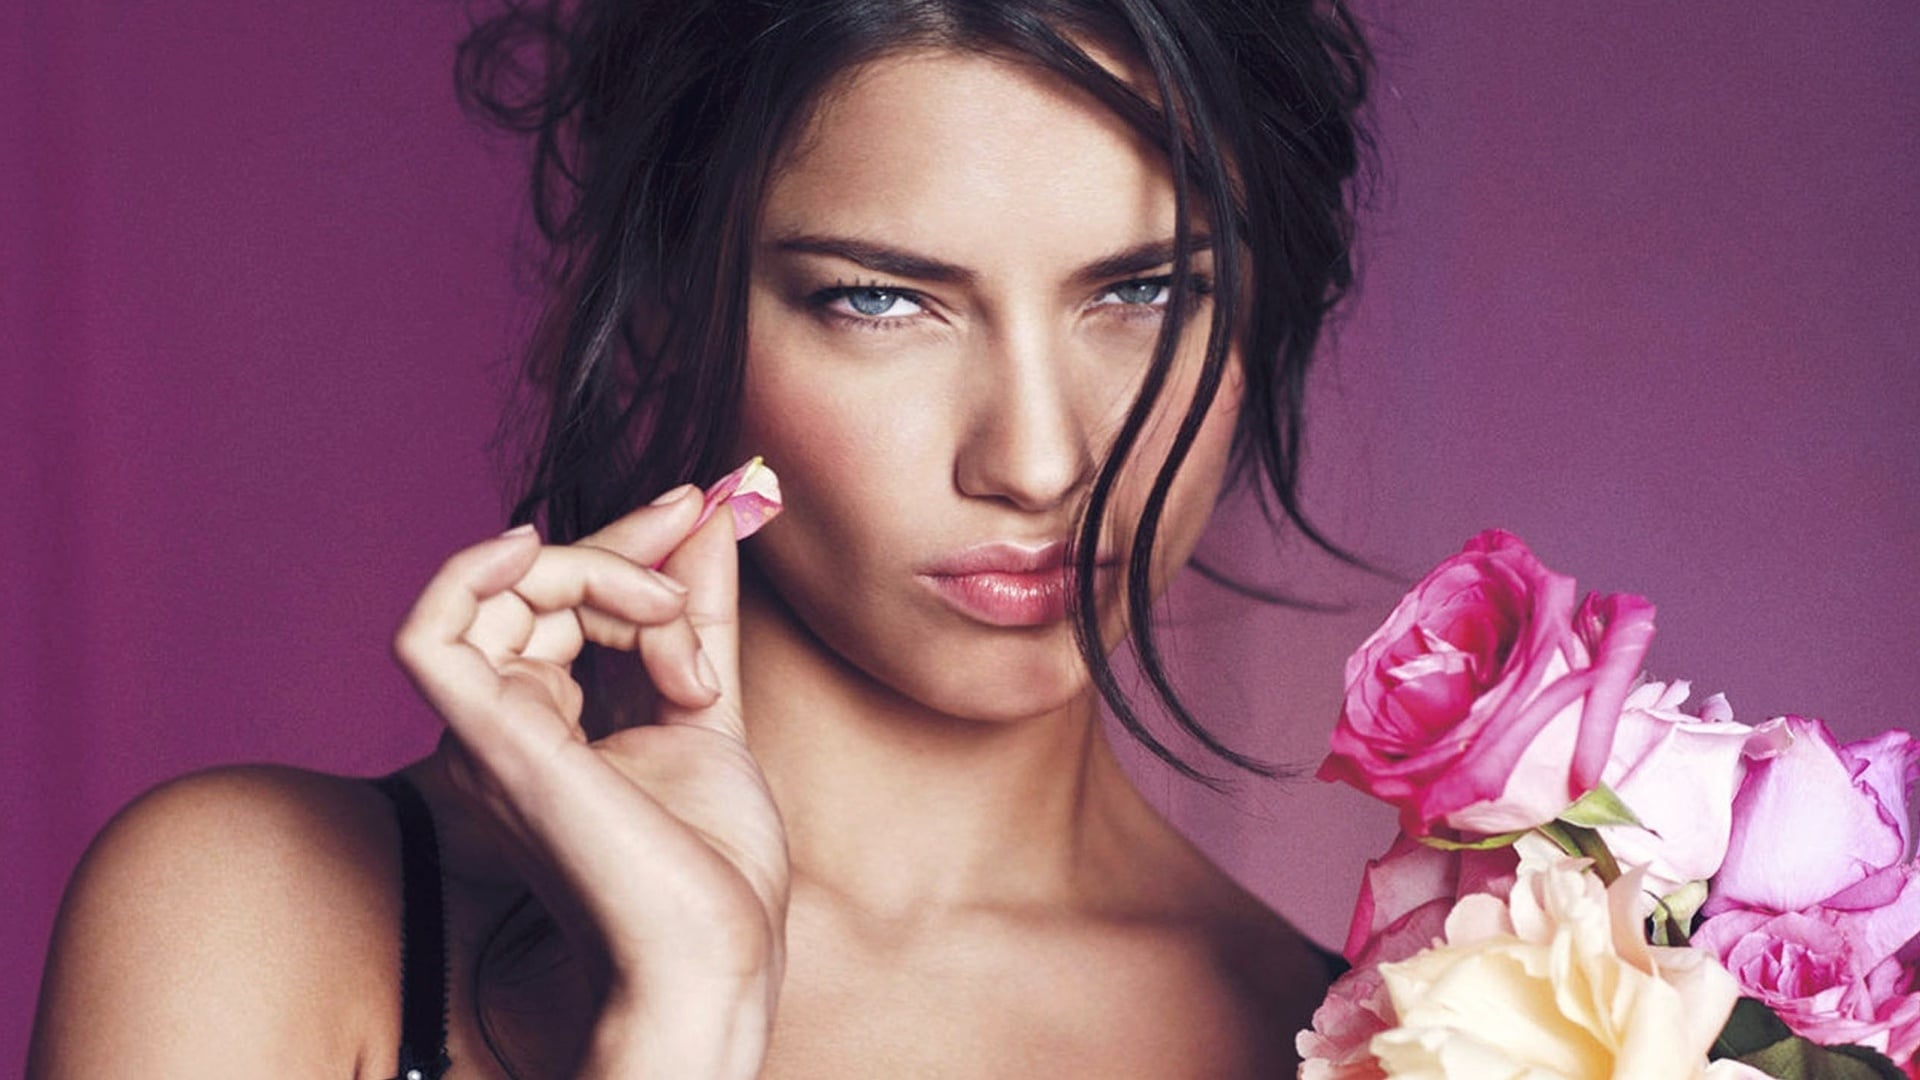 Happy Birthday For more on Adriana: